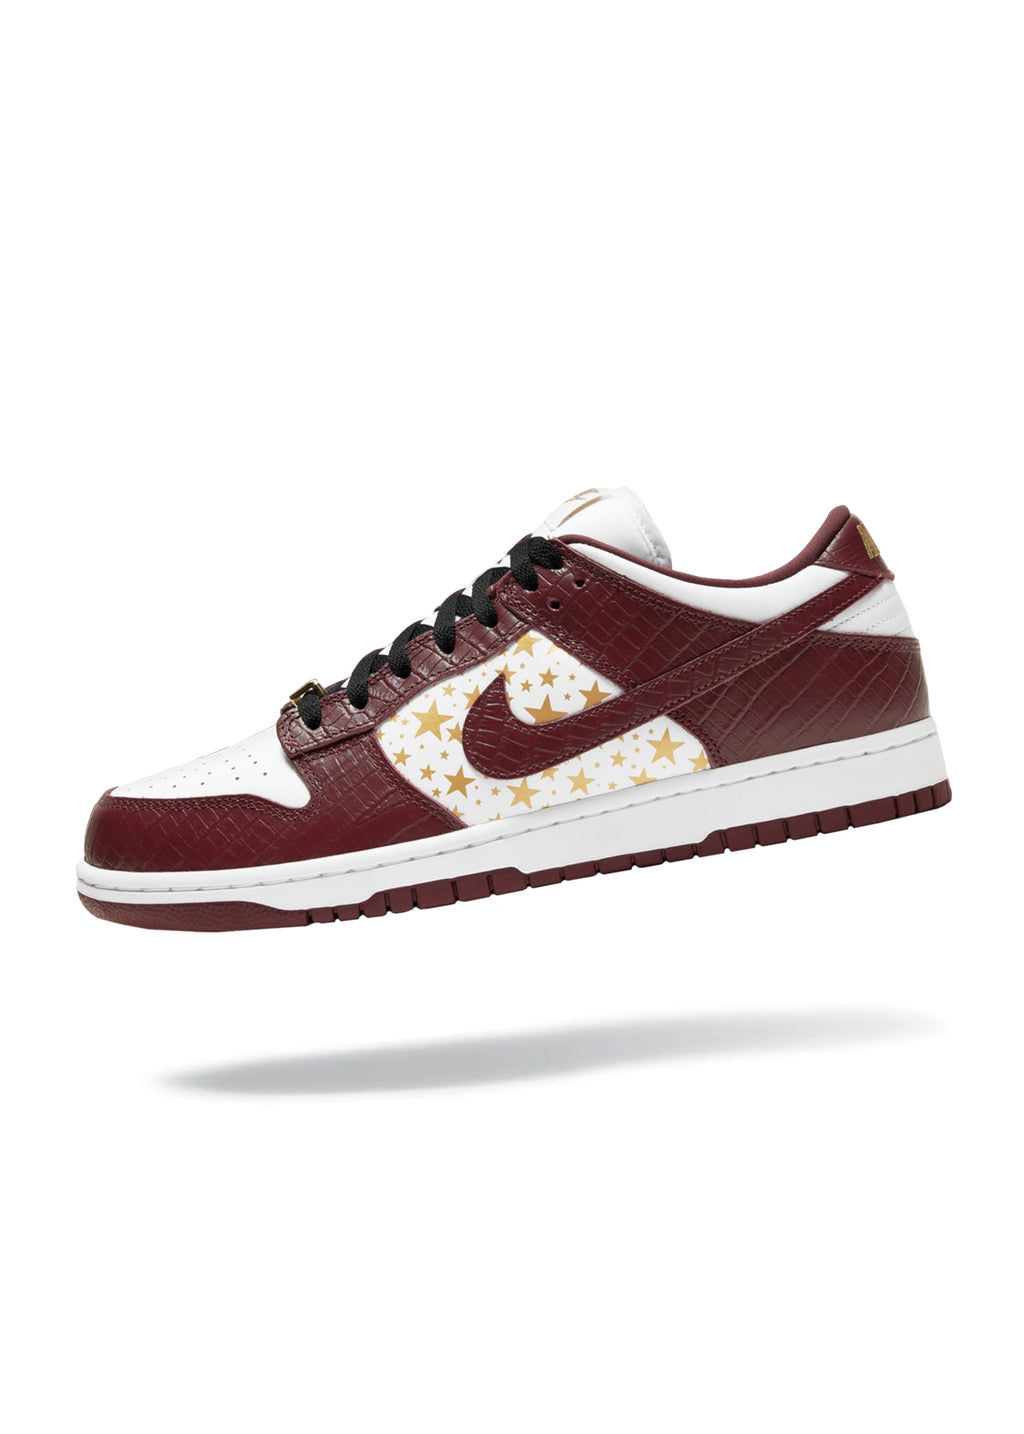 Nike SB Dunk Low Supreme Barkroot Brown